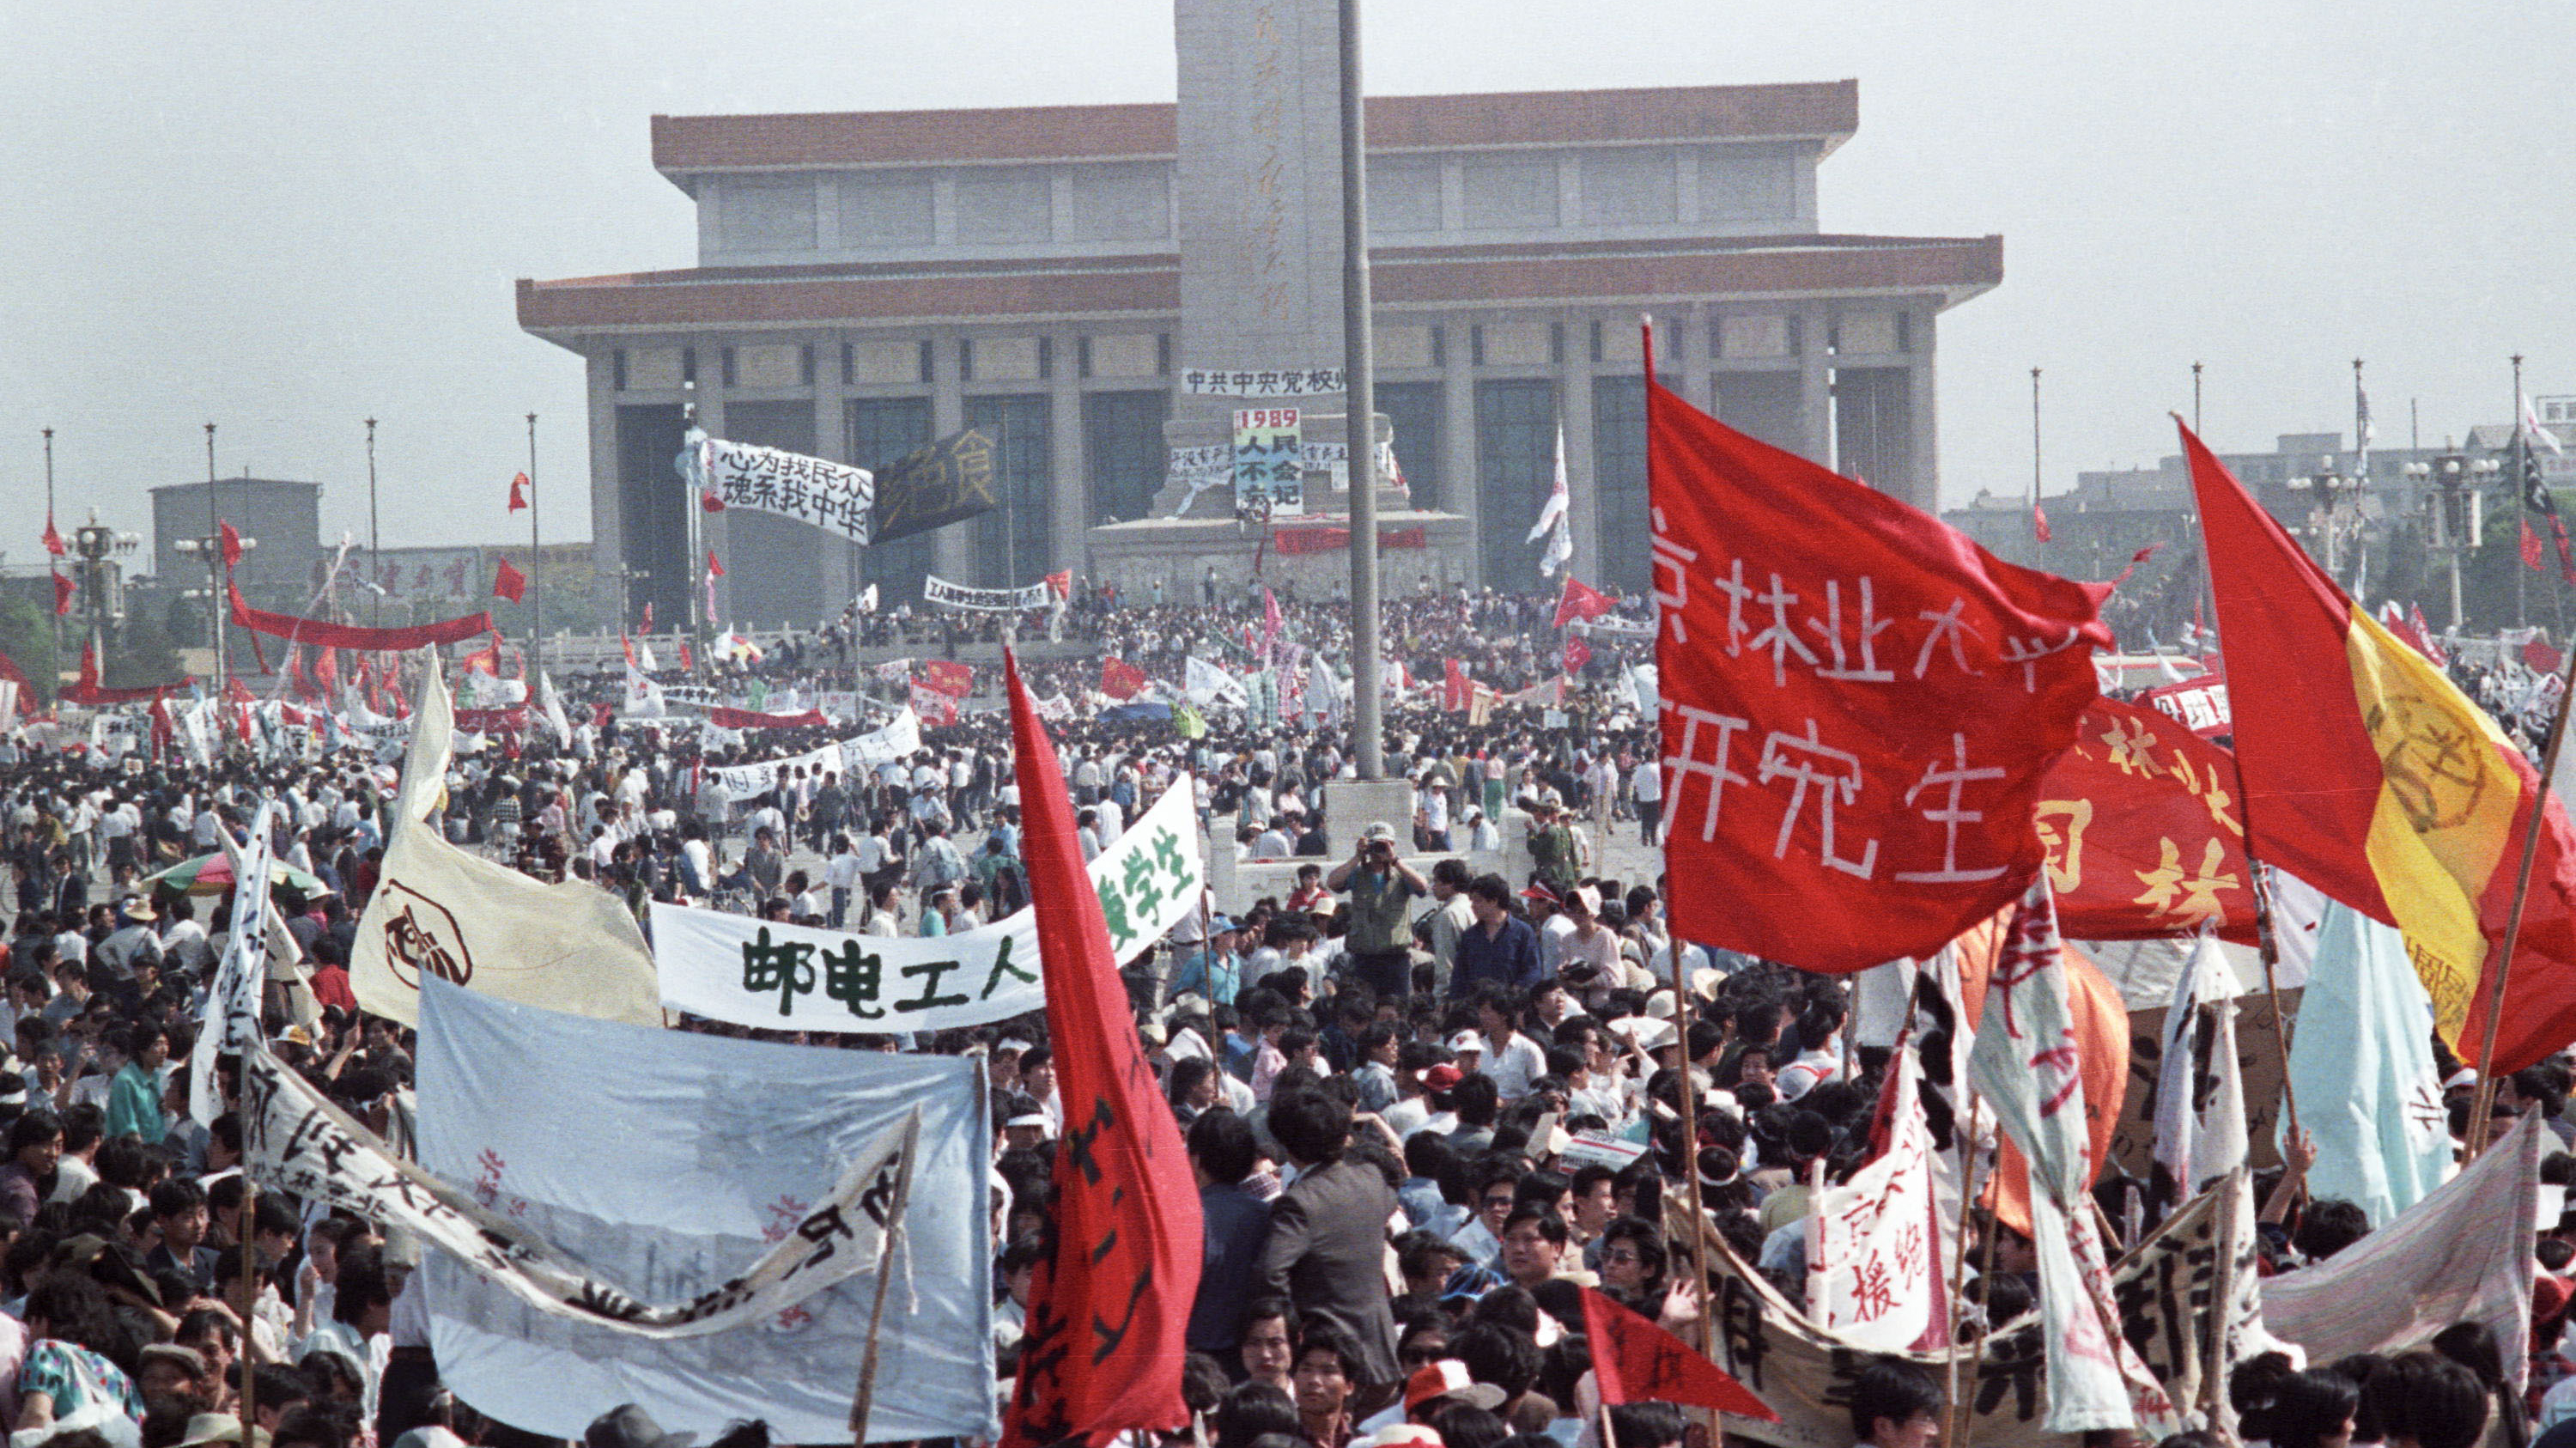 May 1989 protests in Tiananmen Square